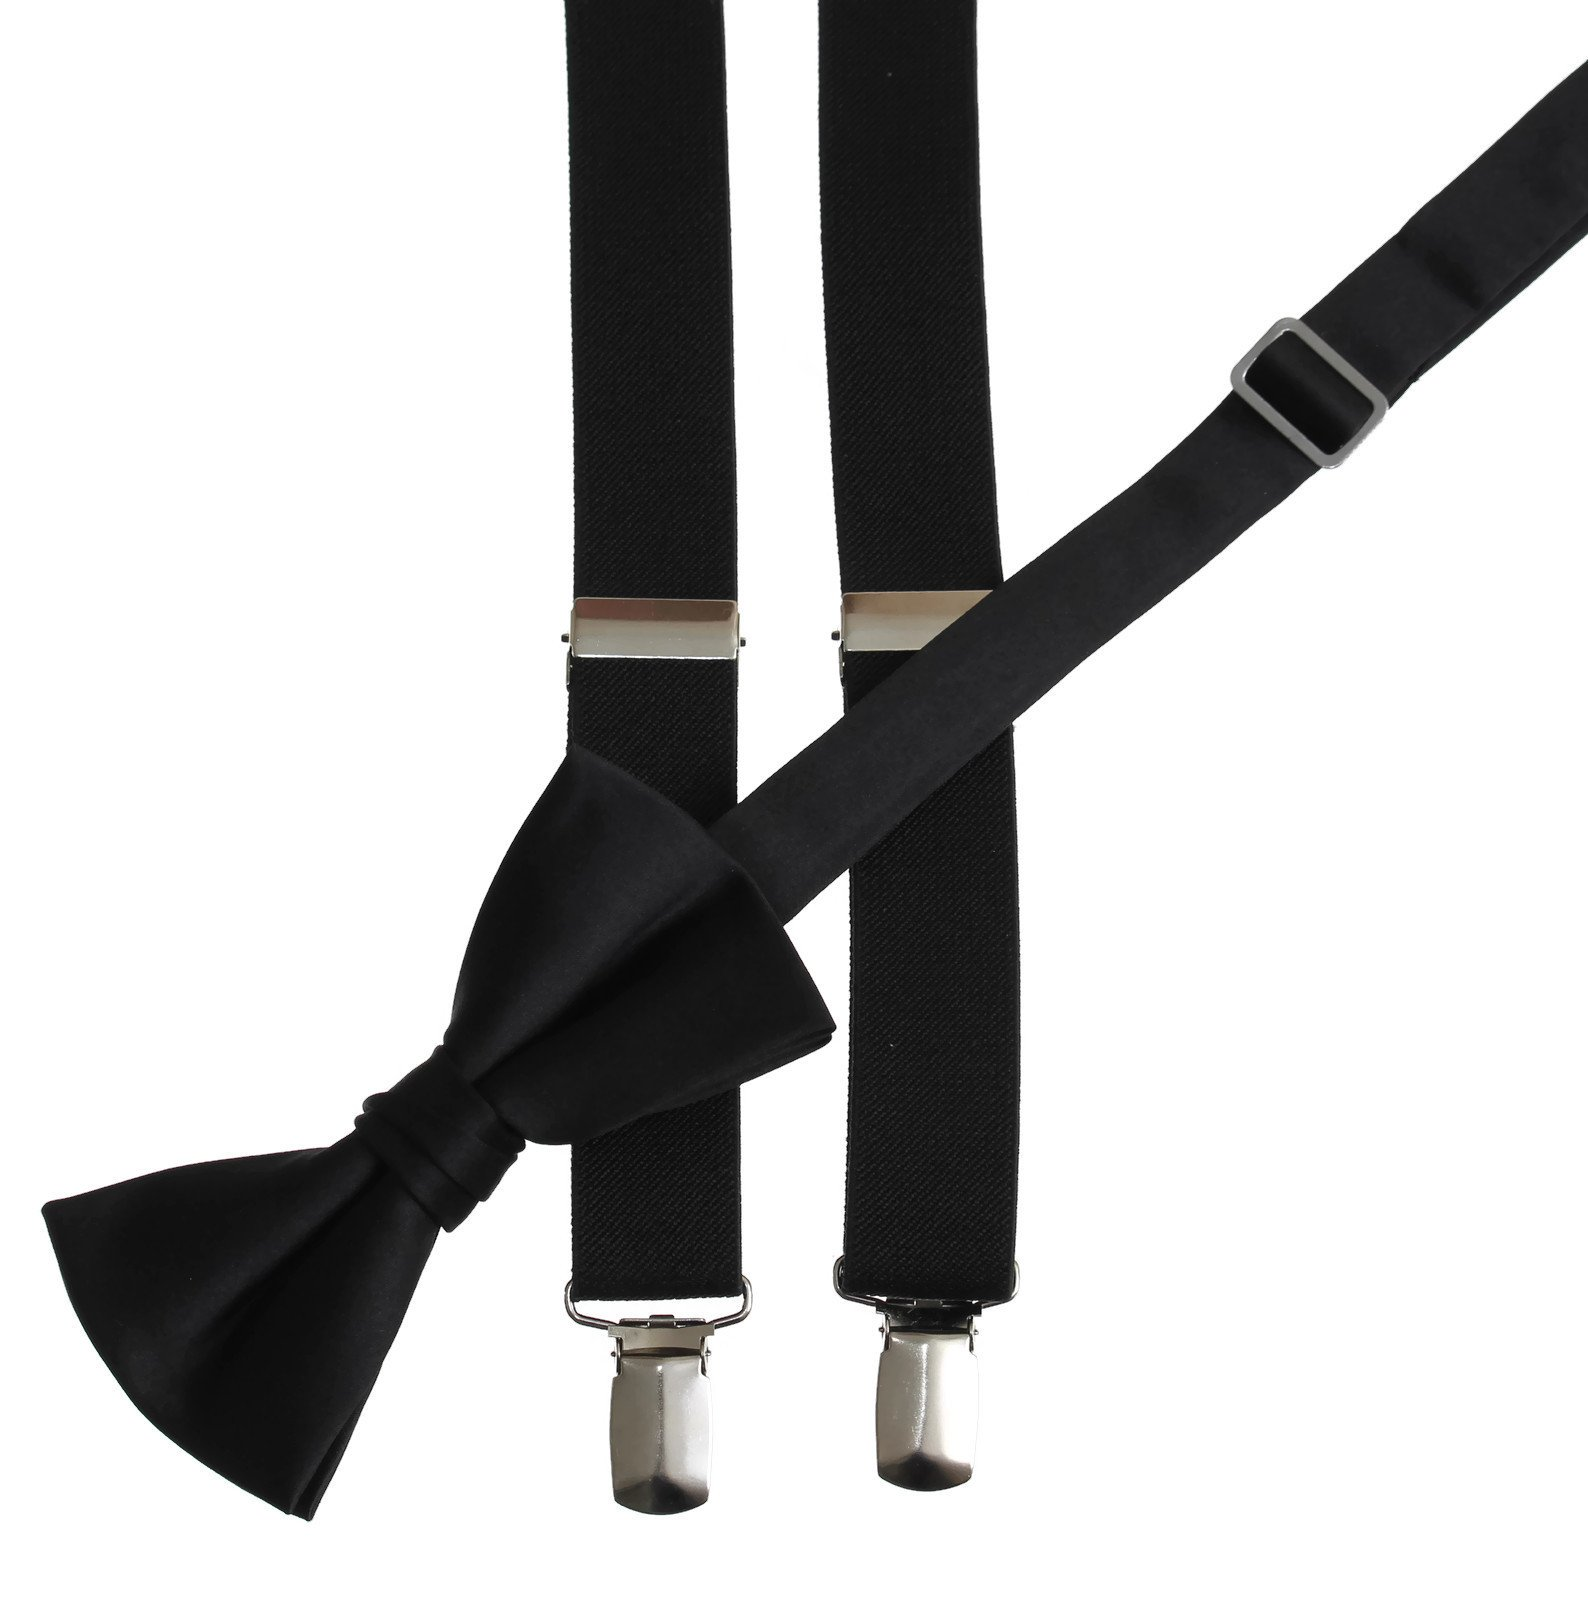 Matching Black Adjustable Suspender and Bow Tie Sets, Kids to Adults Sizing (40'' Youth Ages 12-15)